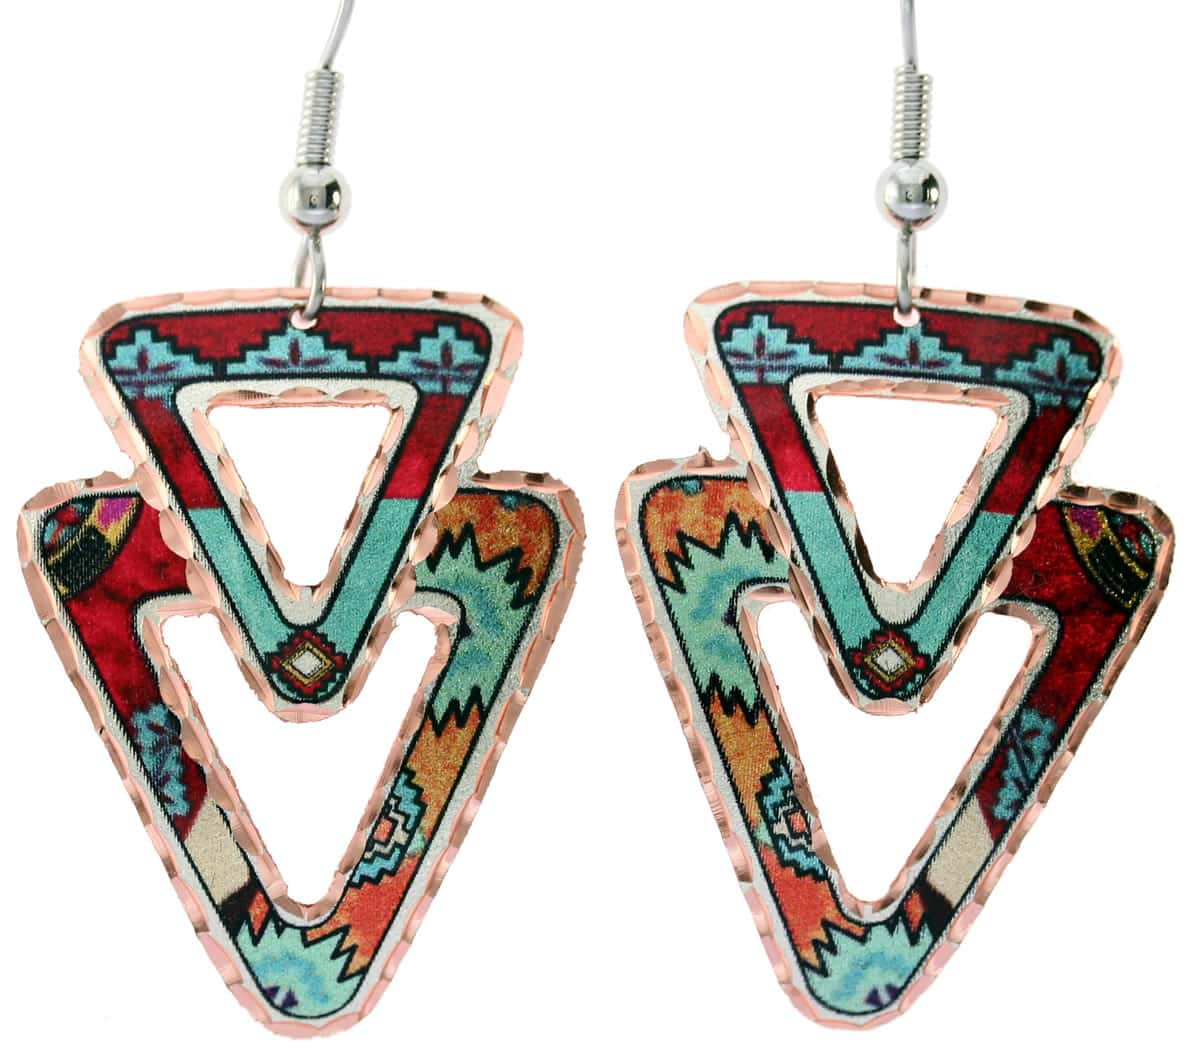 Wear Southwest Native American earrings for fashionably elegant and sophisticated look